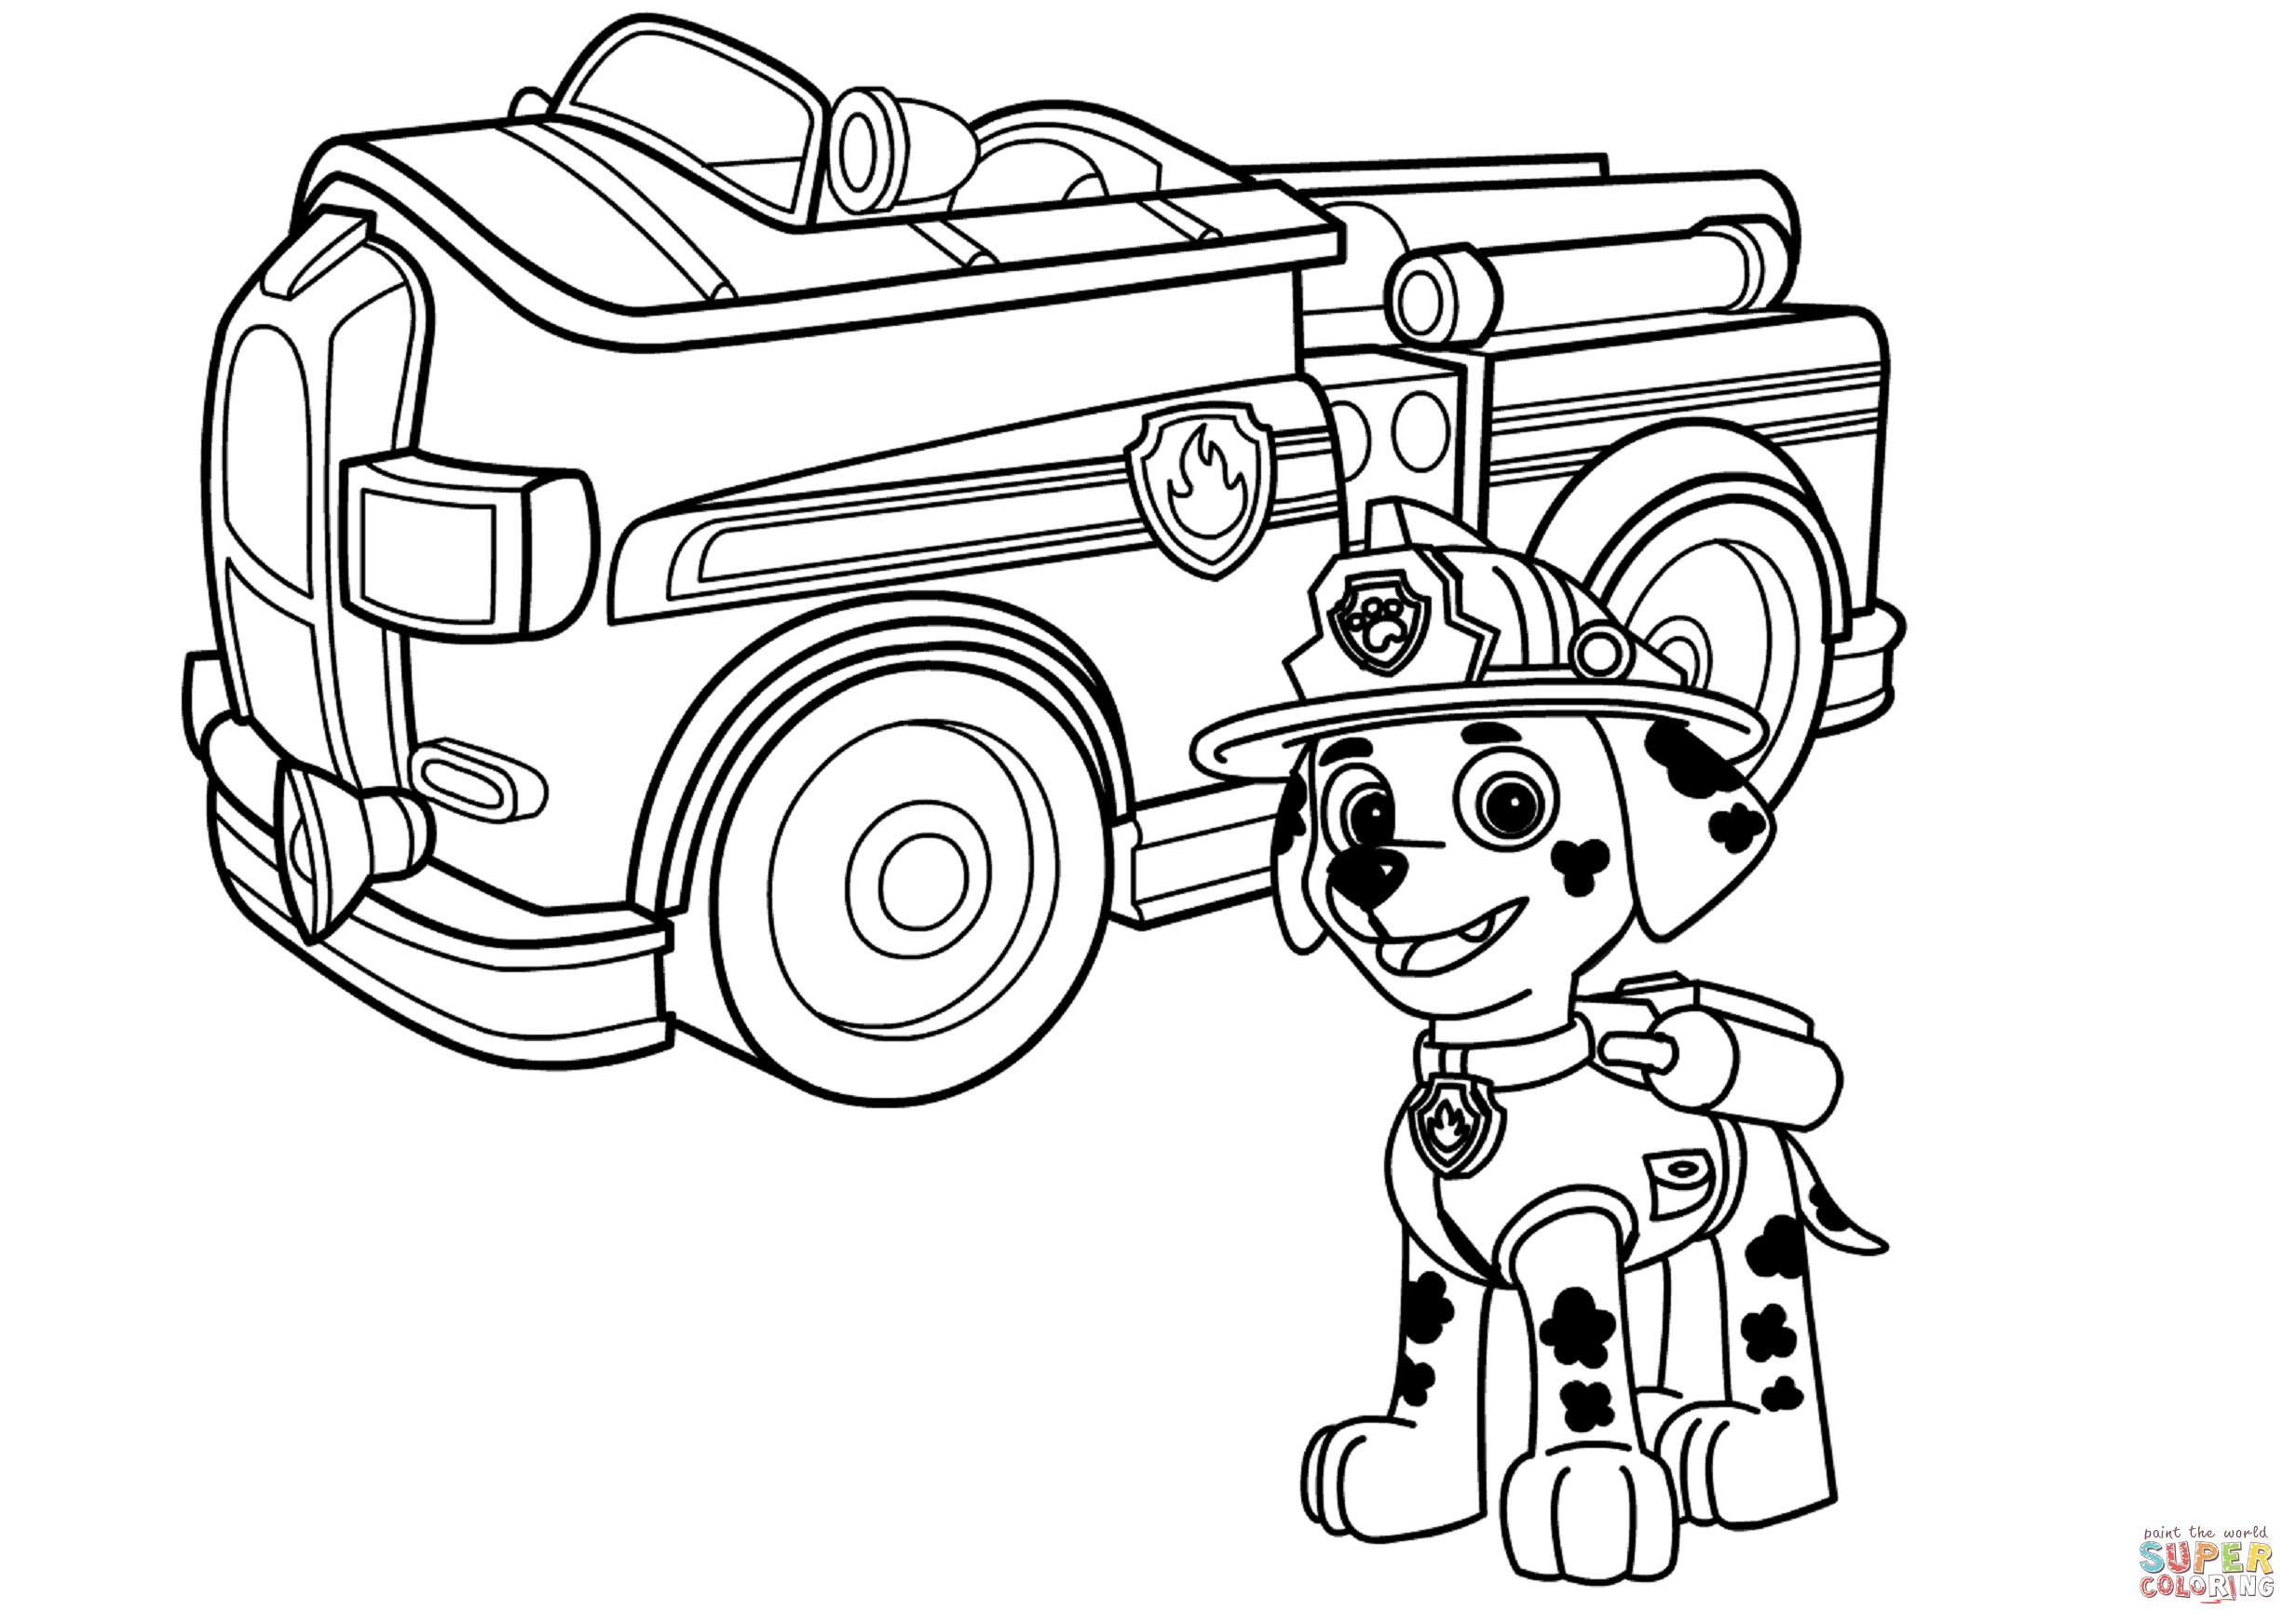 Drawn truck coloring page Page  Paw Marshall with